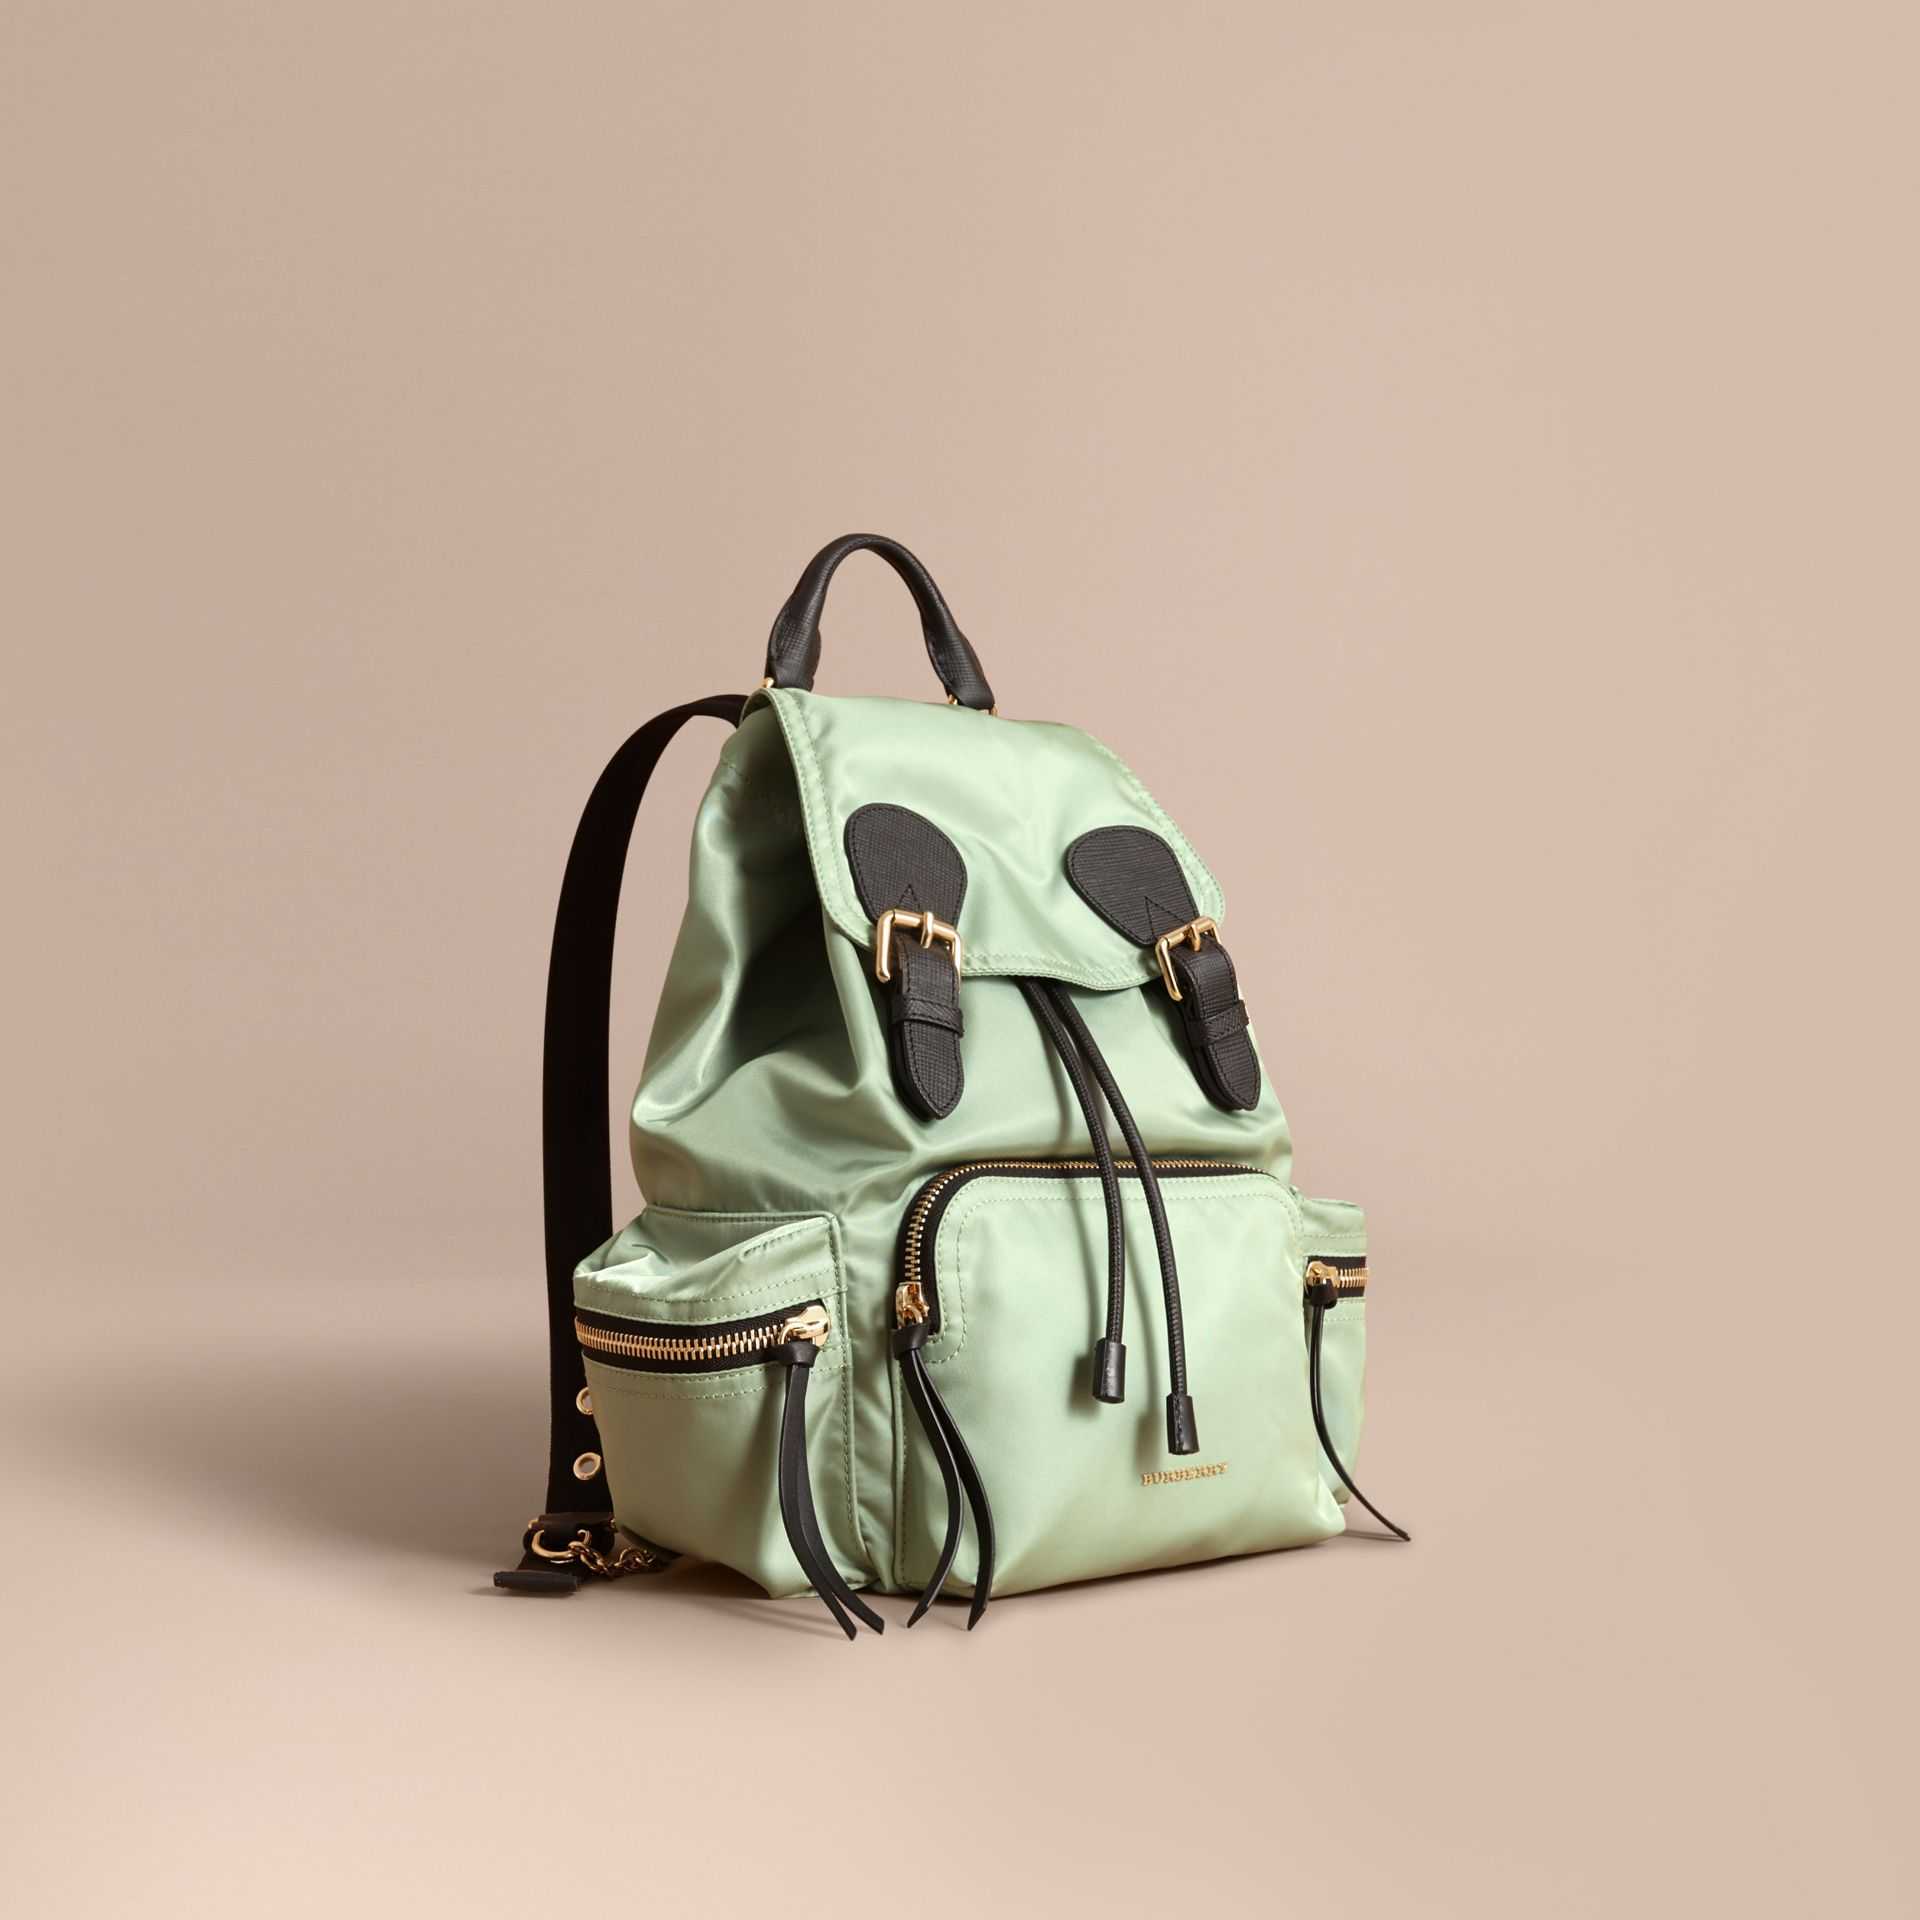 Sac The Rucksack medium en nylon technique et cuir (Vert Pomme) - Femme | Burberry - photo de la galerie 1